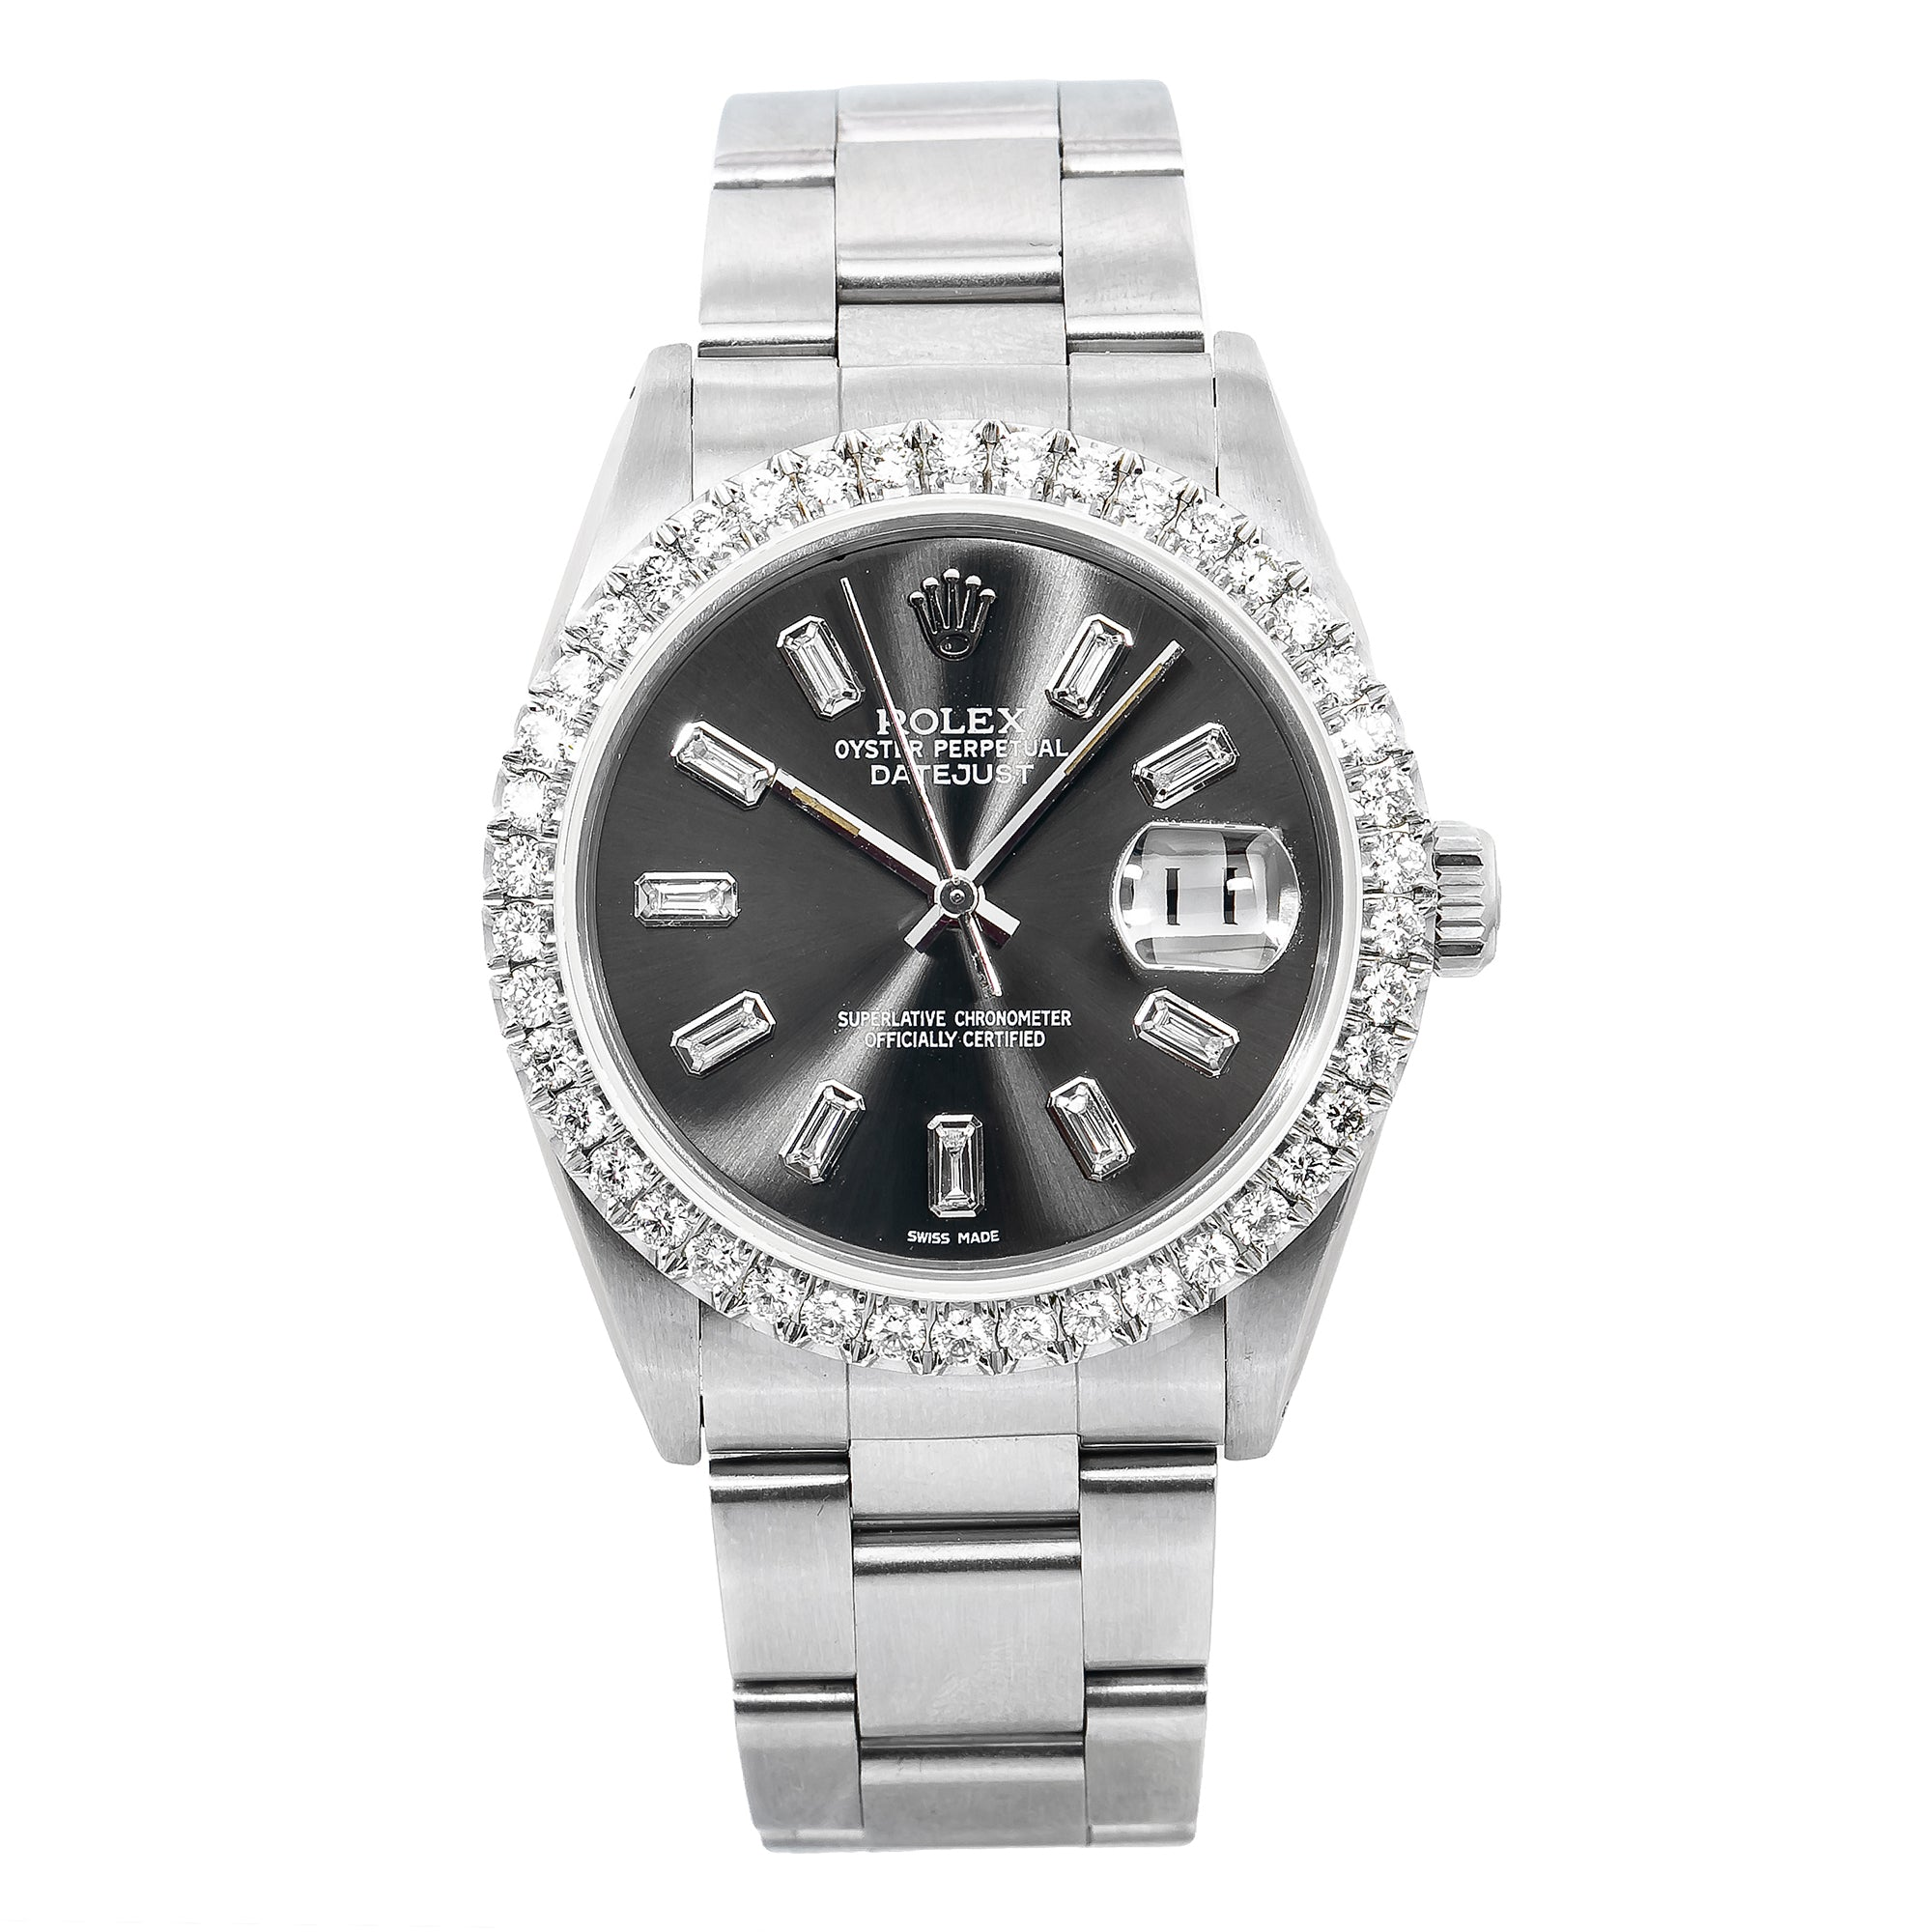 Rolex Datejust 16014 36MM Black Diamond Dial With Stainless Steel Oyster Bracelet